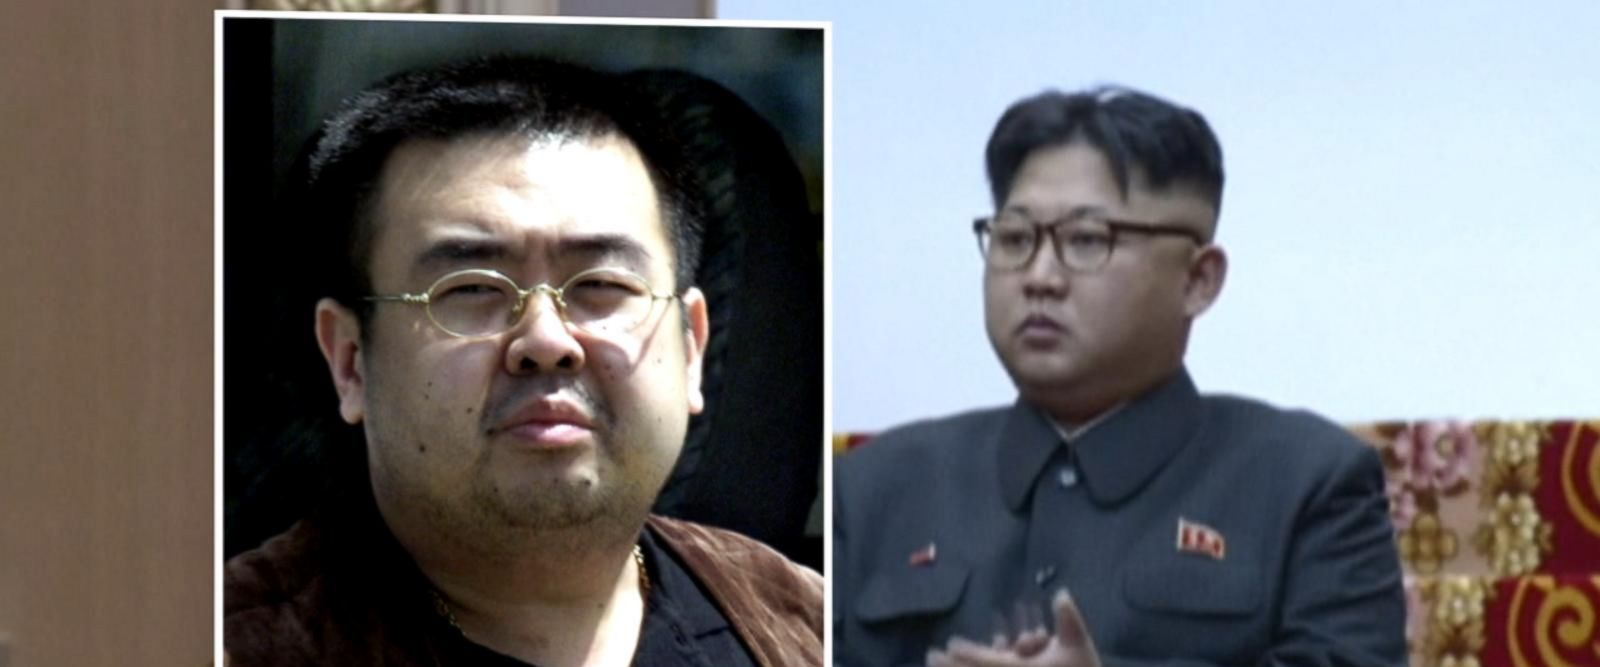 VIDEO: Half-brother of Kim Jong Un believed to be killed by deadly nerve toxin